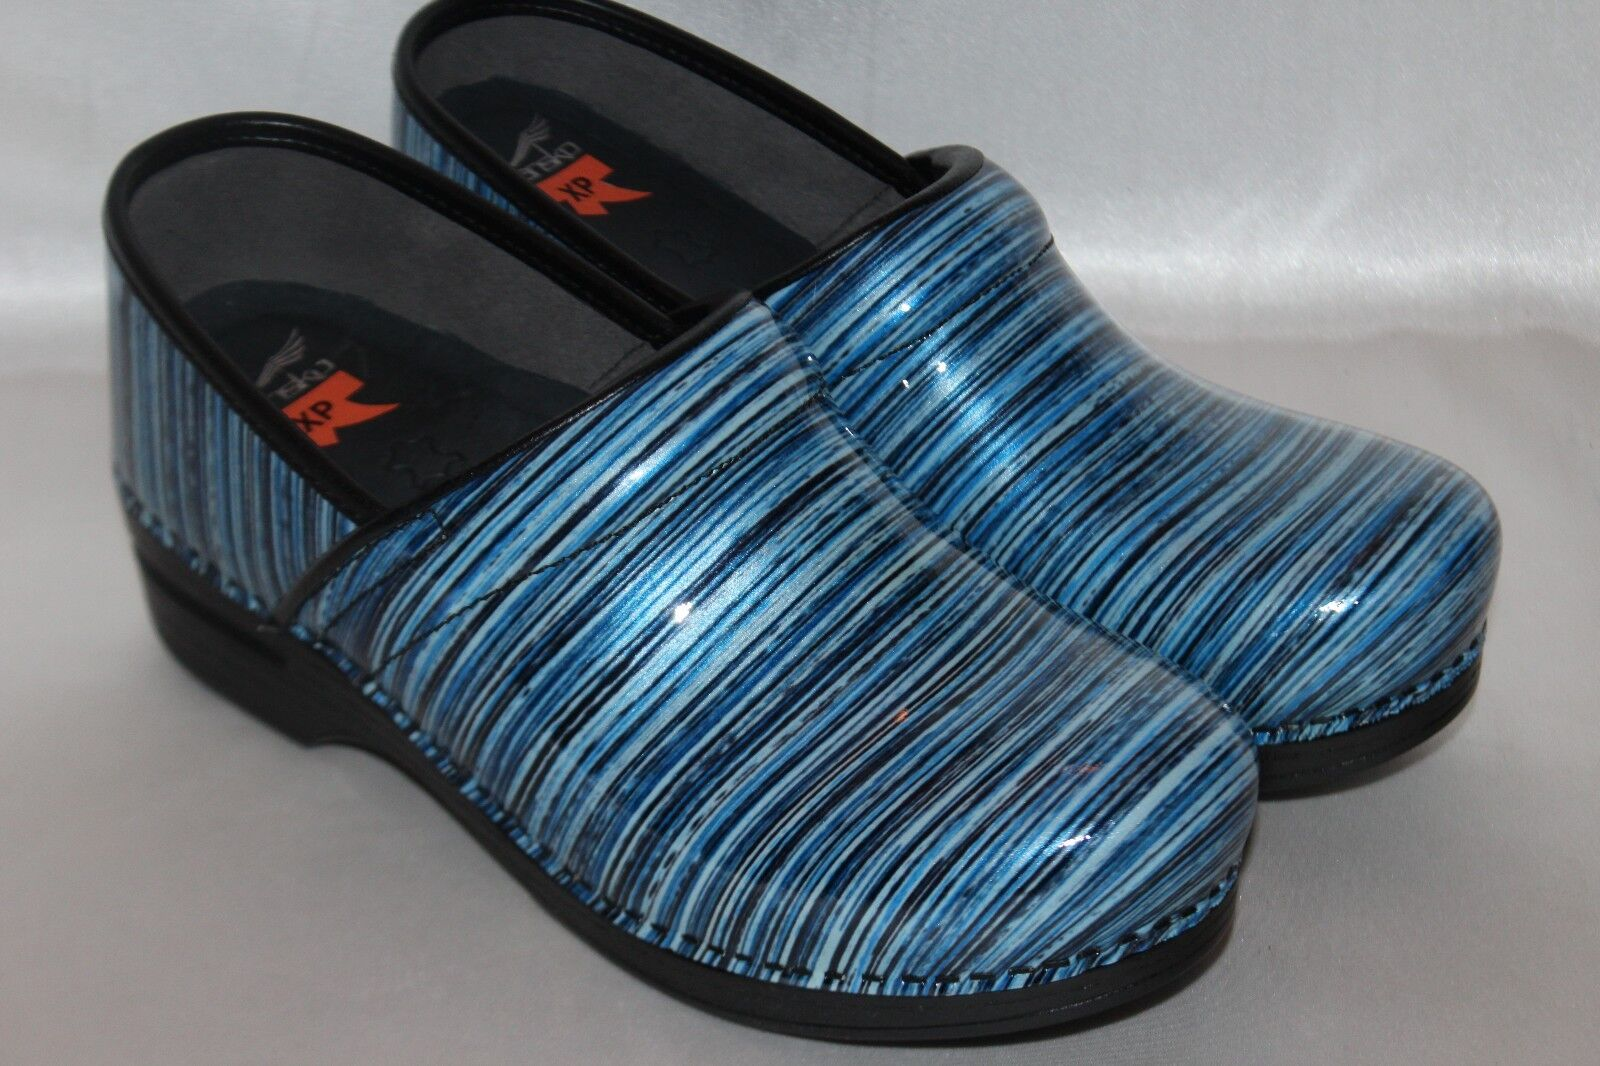 DANSKO PRO XP Blue Stripe Patent Leather Slip On Comfort Clogs Shoes EU41 US 11